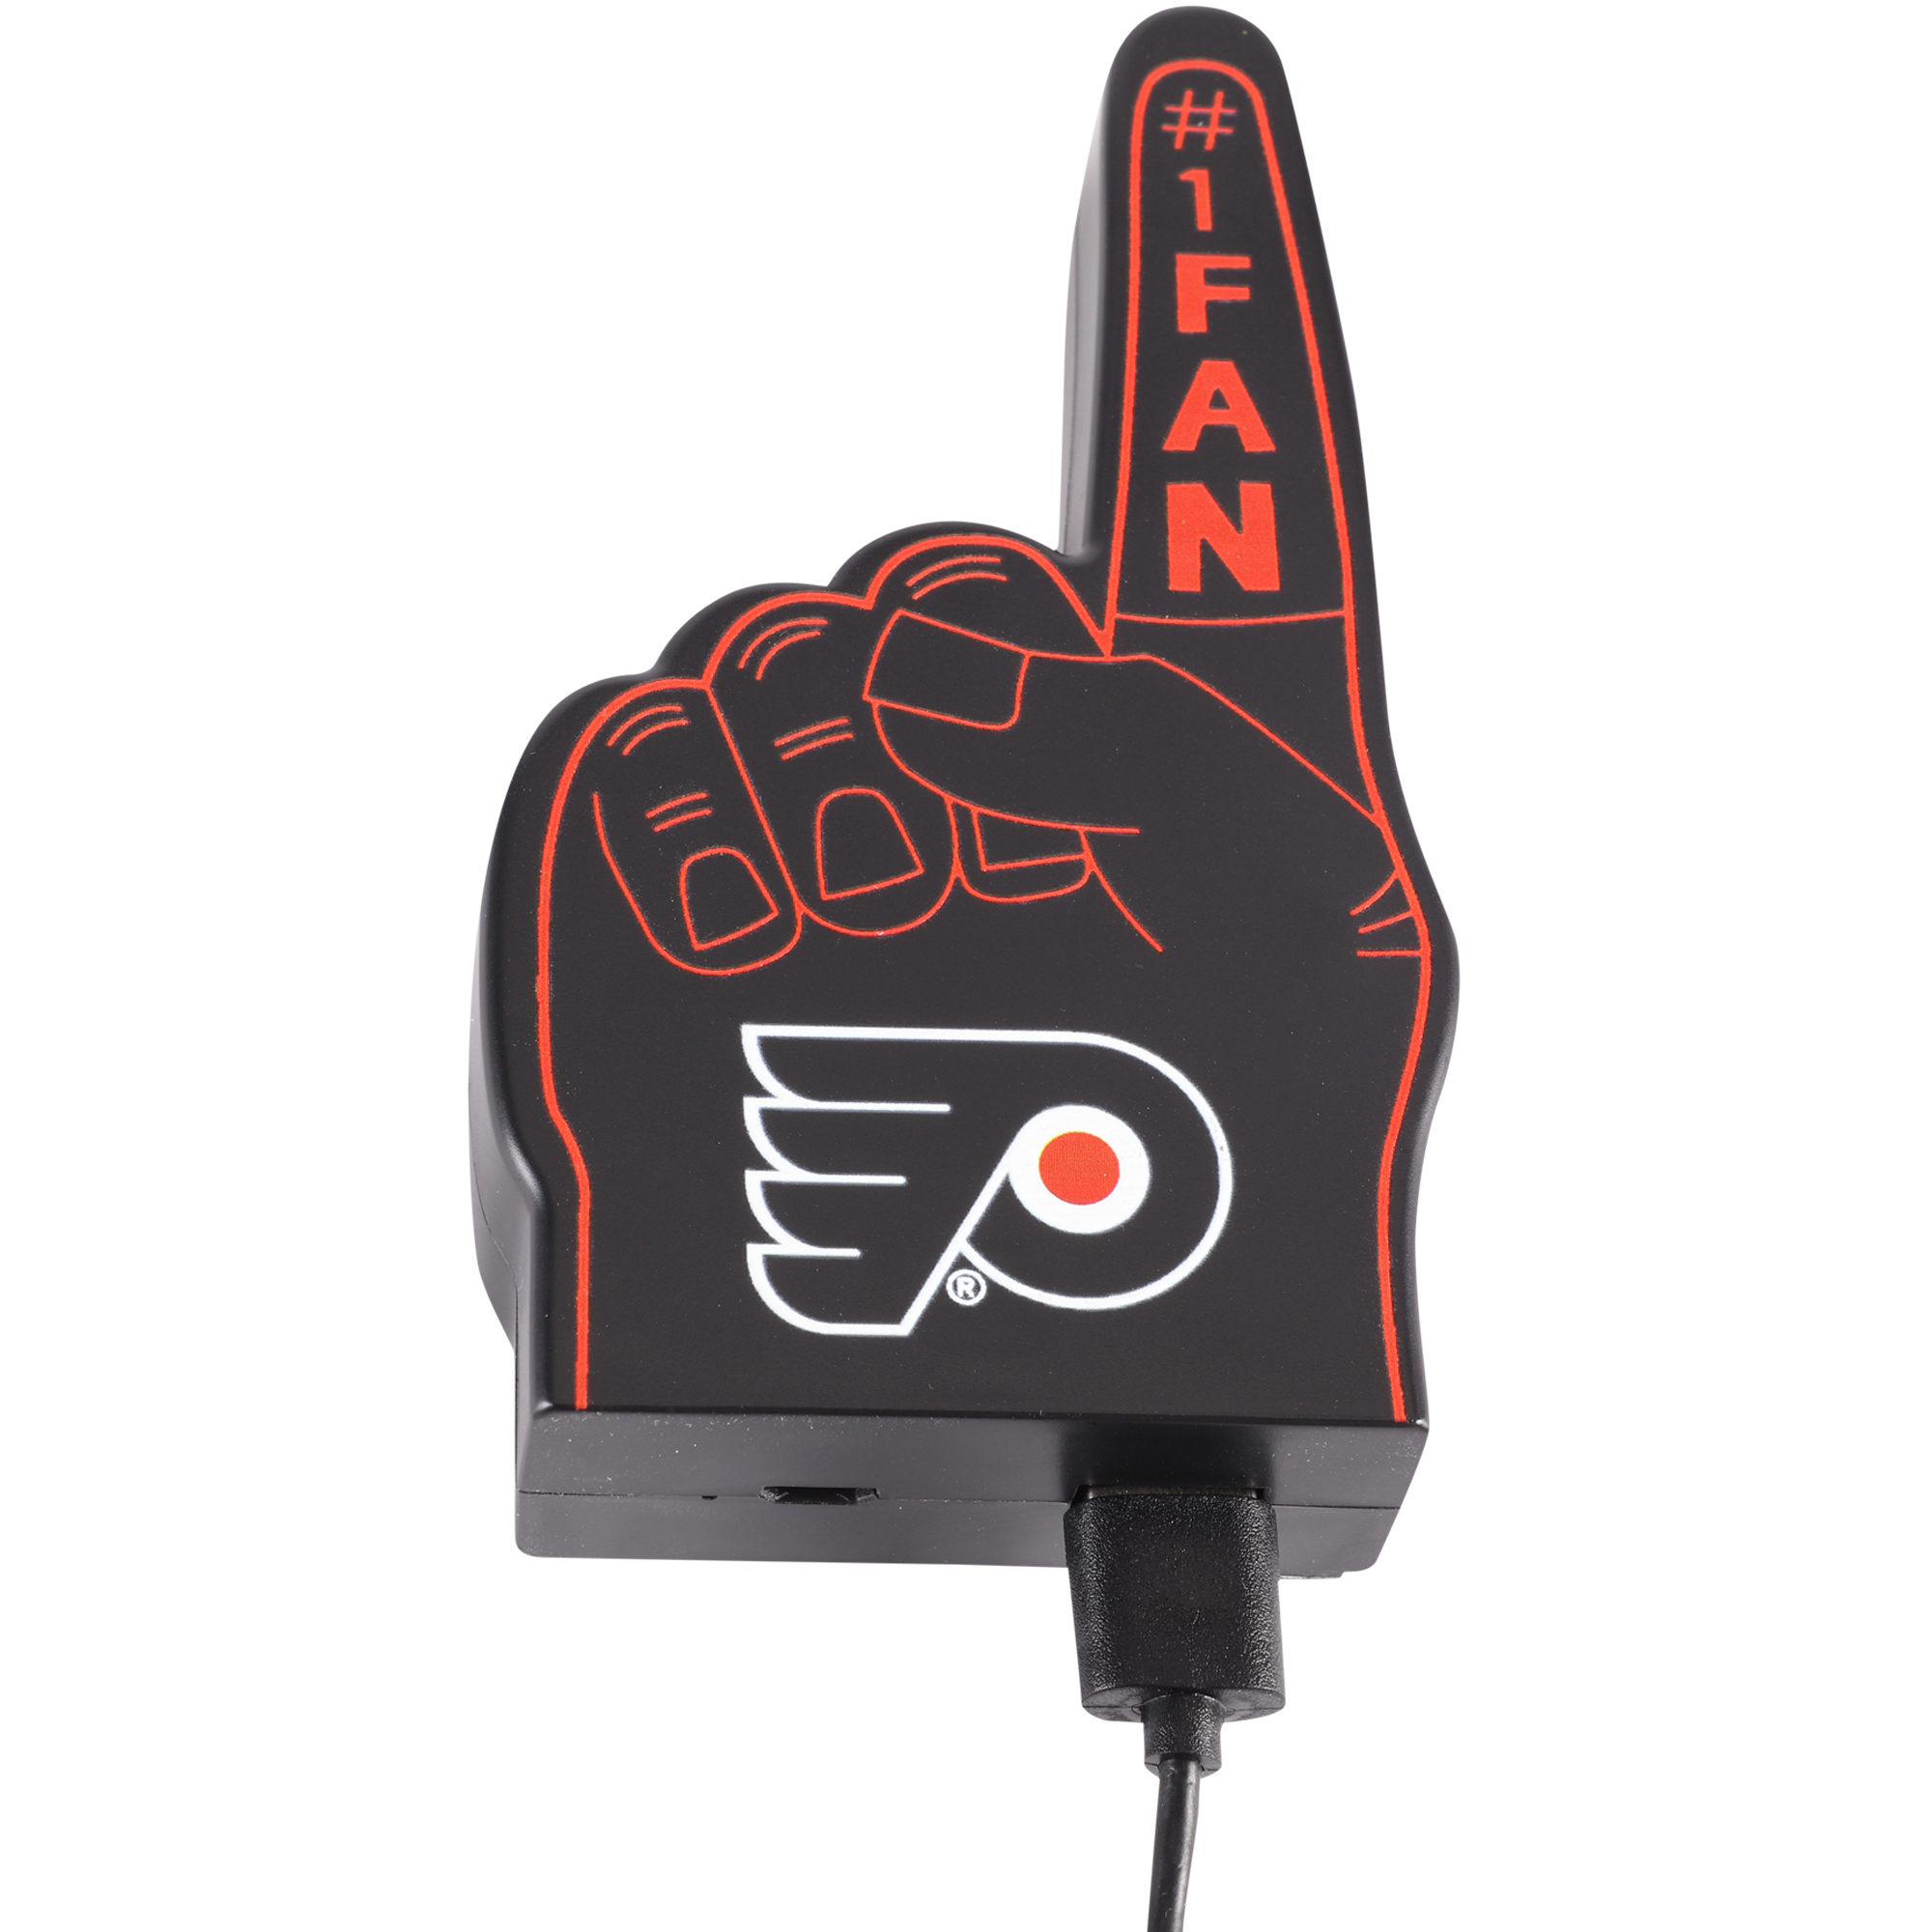 Philadelphia Flyers #1 Fan Finger Power Bank - No Size